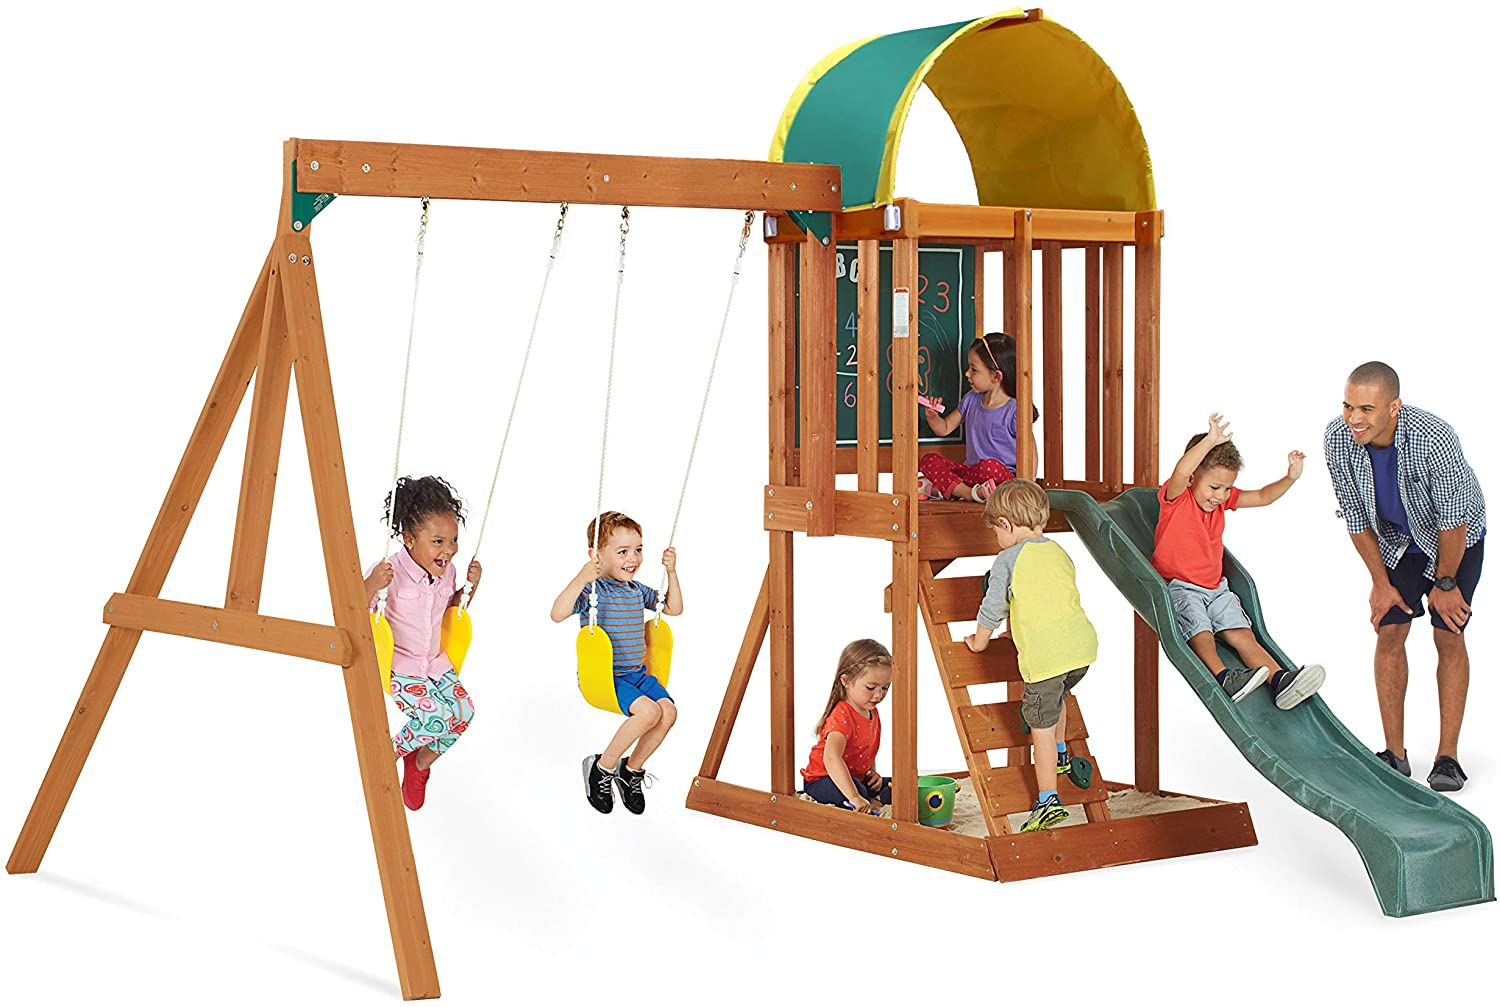 Big Backyard KidKraft Swing Set